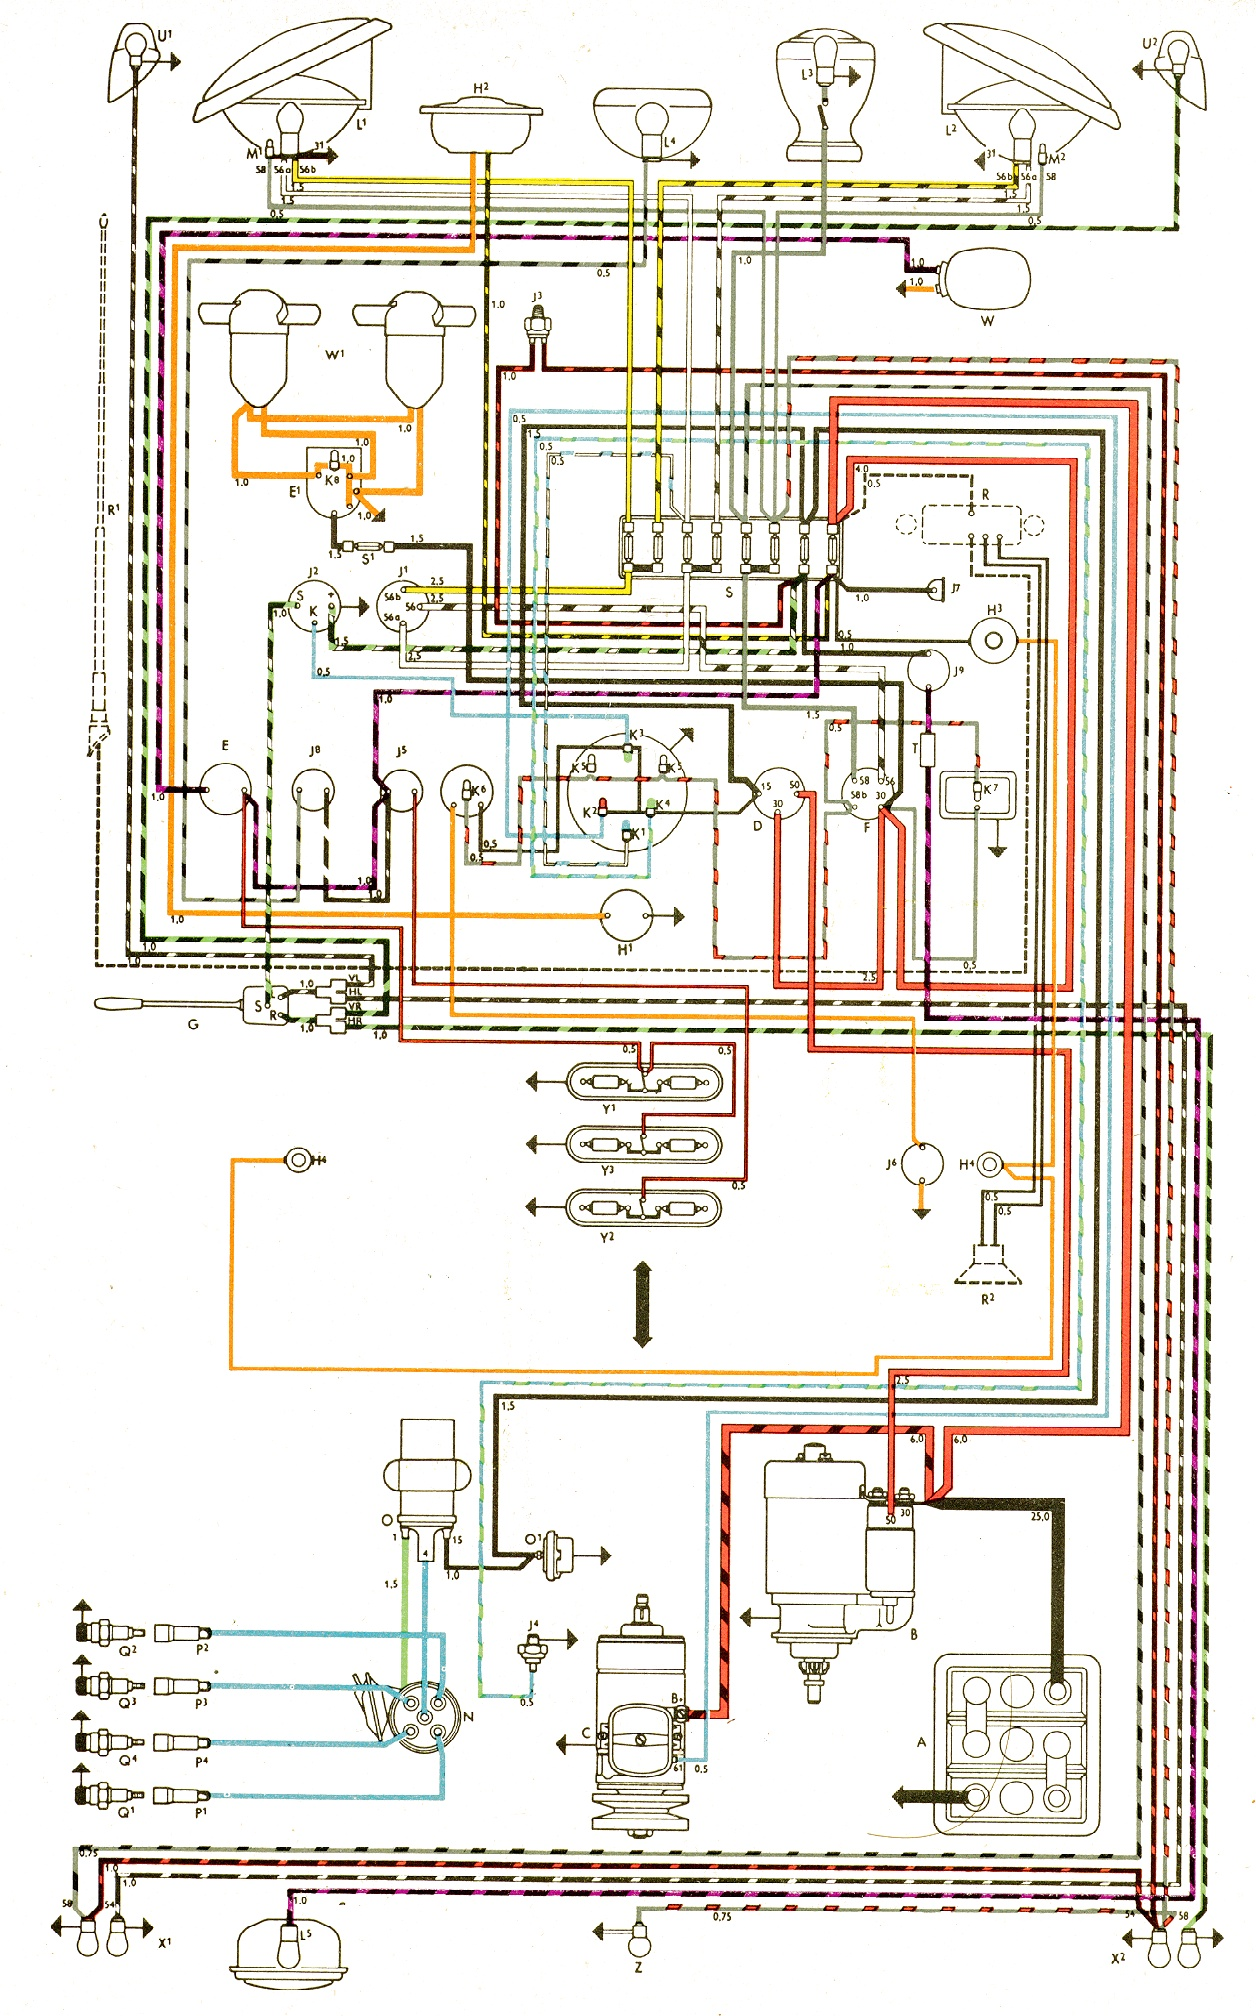 bus 62 bus wiring diagram vw wiring harness diagram \u2022 wiring diagrams j 1965 vw bus wiring harness at cos-gaming.co